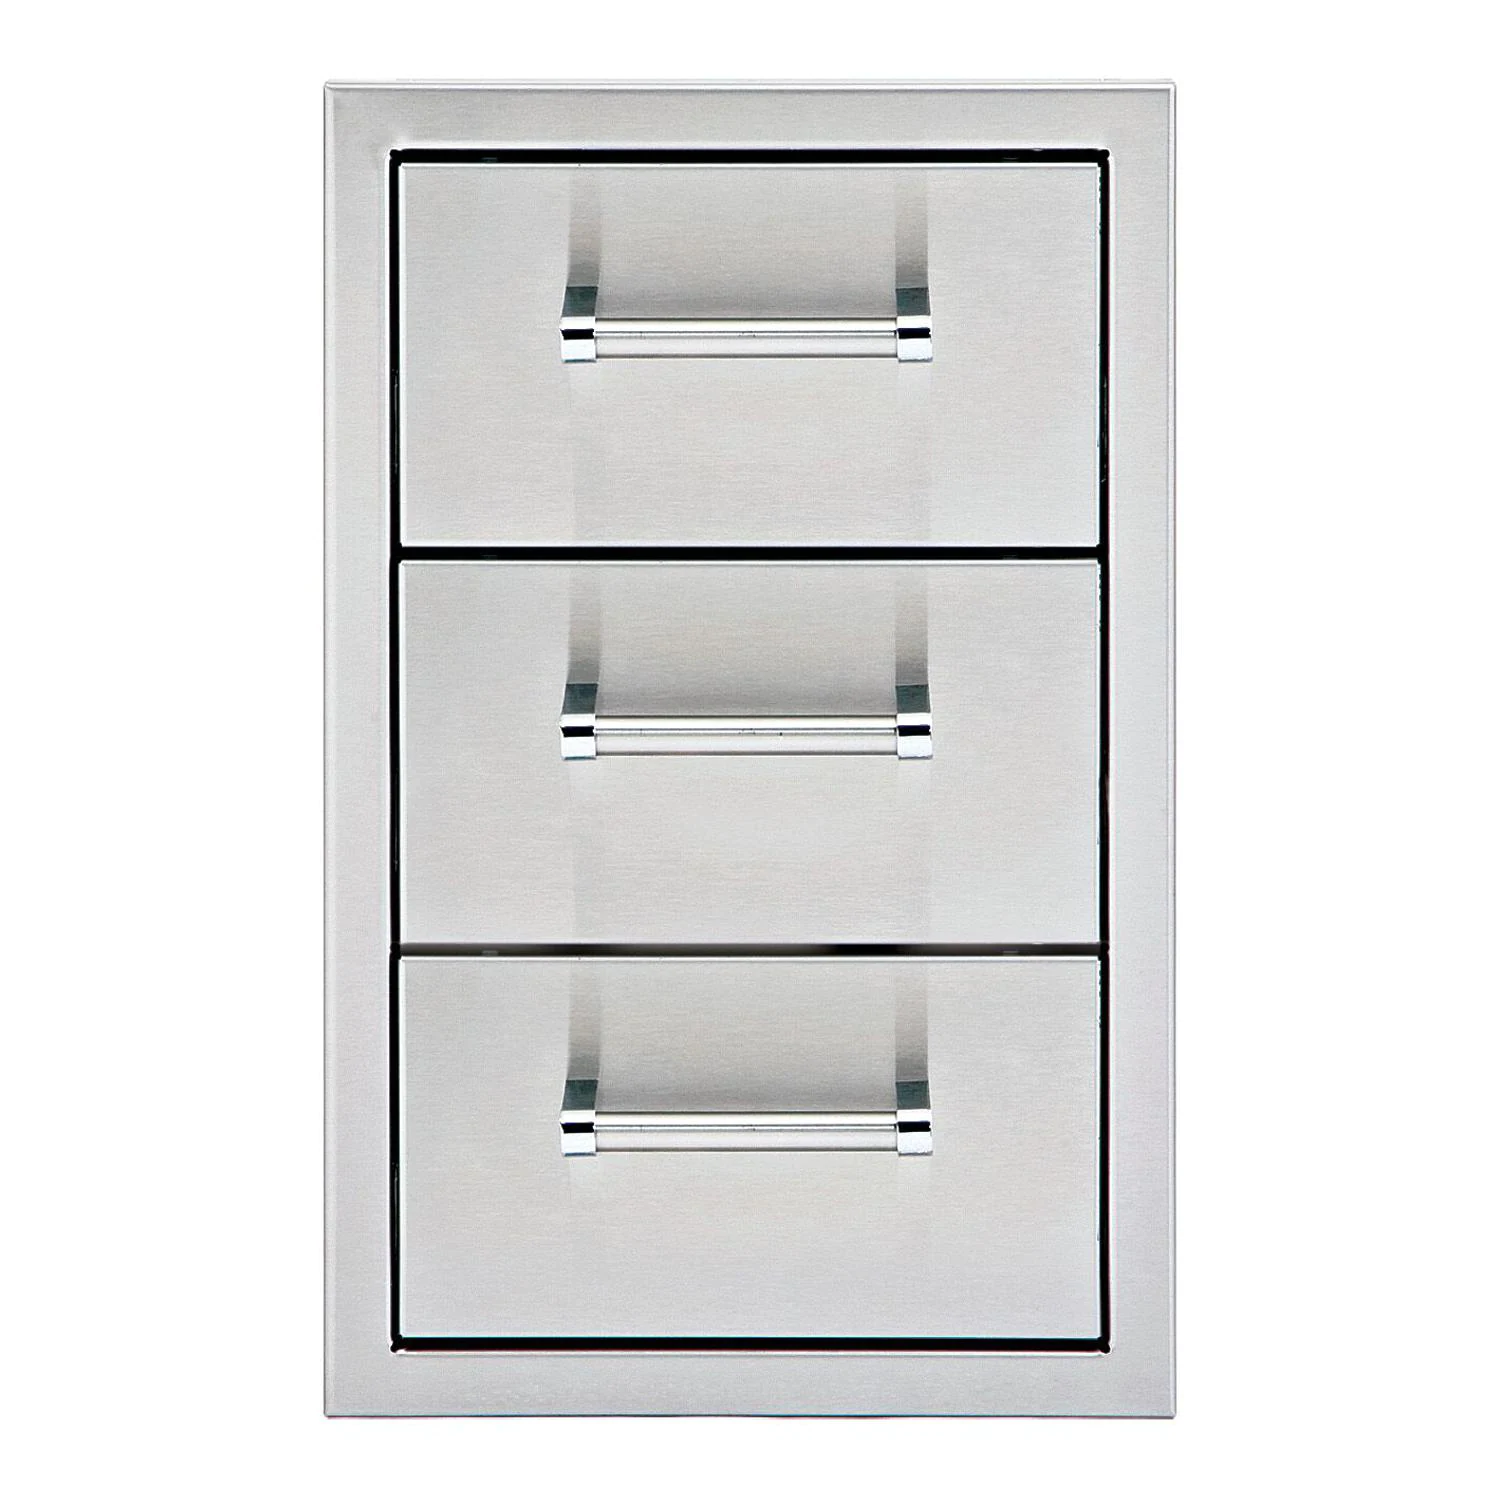 Delta Heat 13-Inch Stainless Steel Triple Access Drawer - DHSD133-B